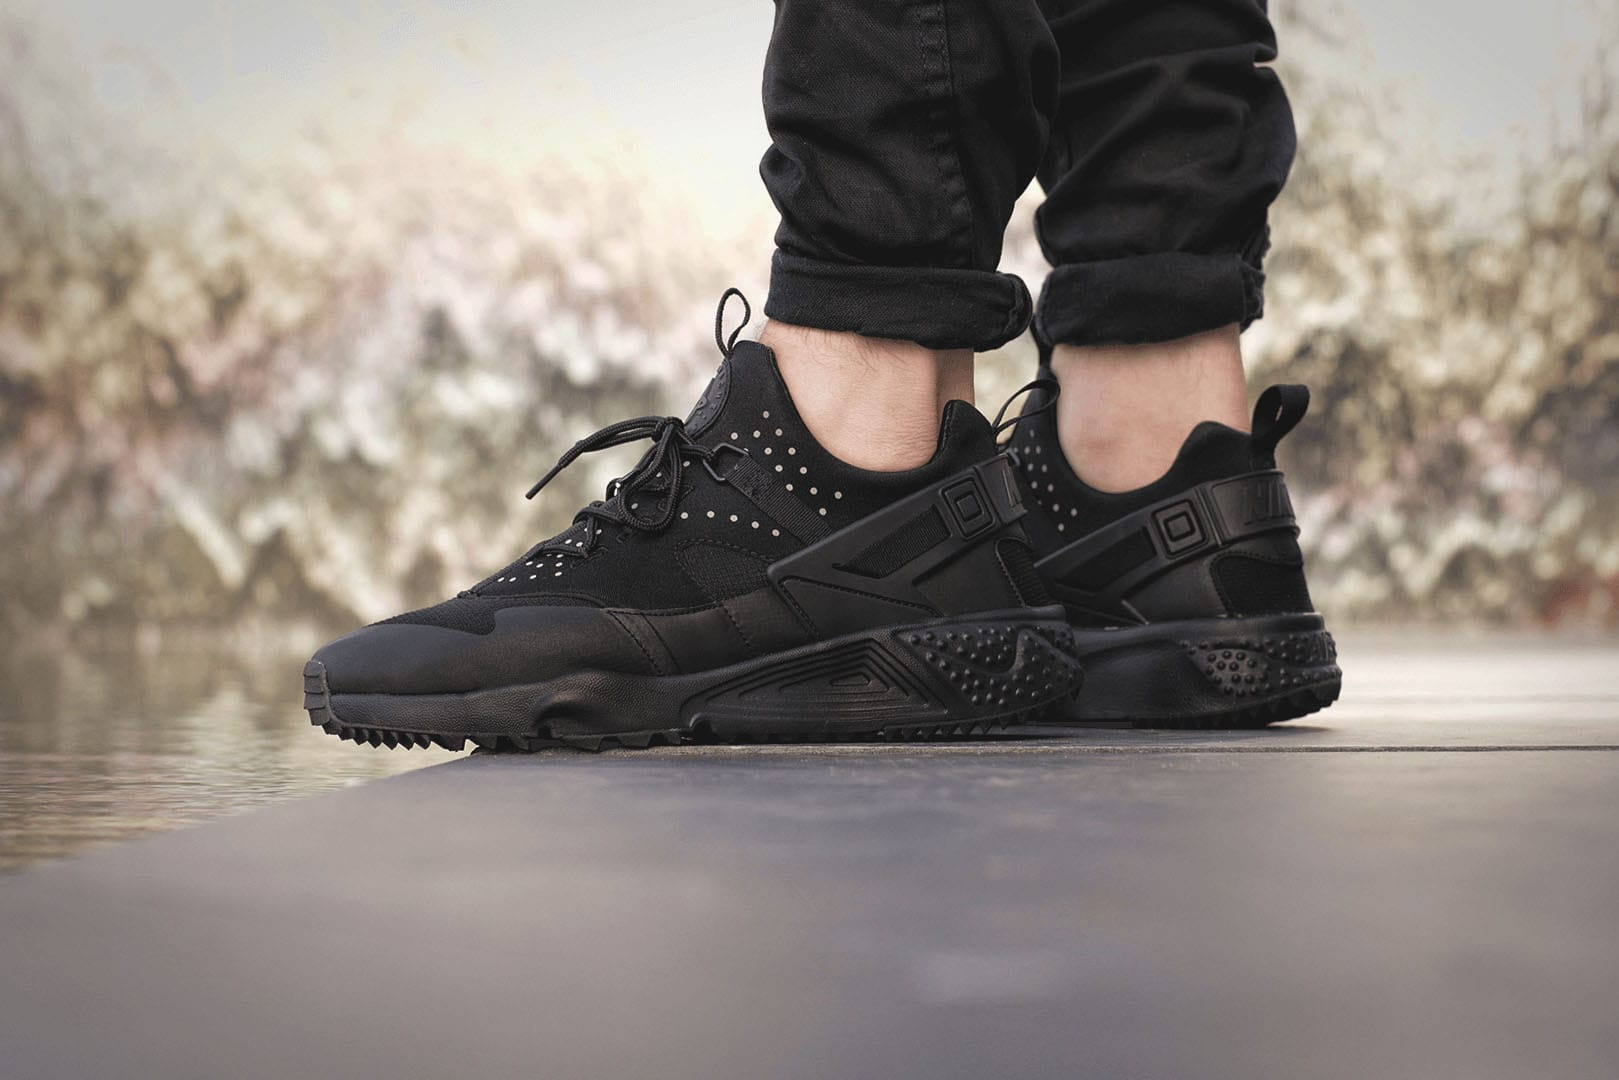 9ec9ff55e1 new zealand nike huarache air utility black 02e11 af5c8